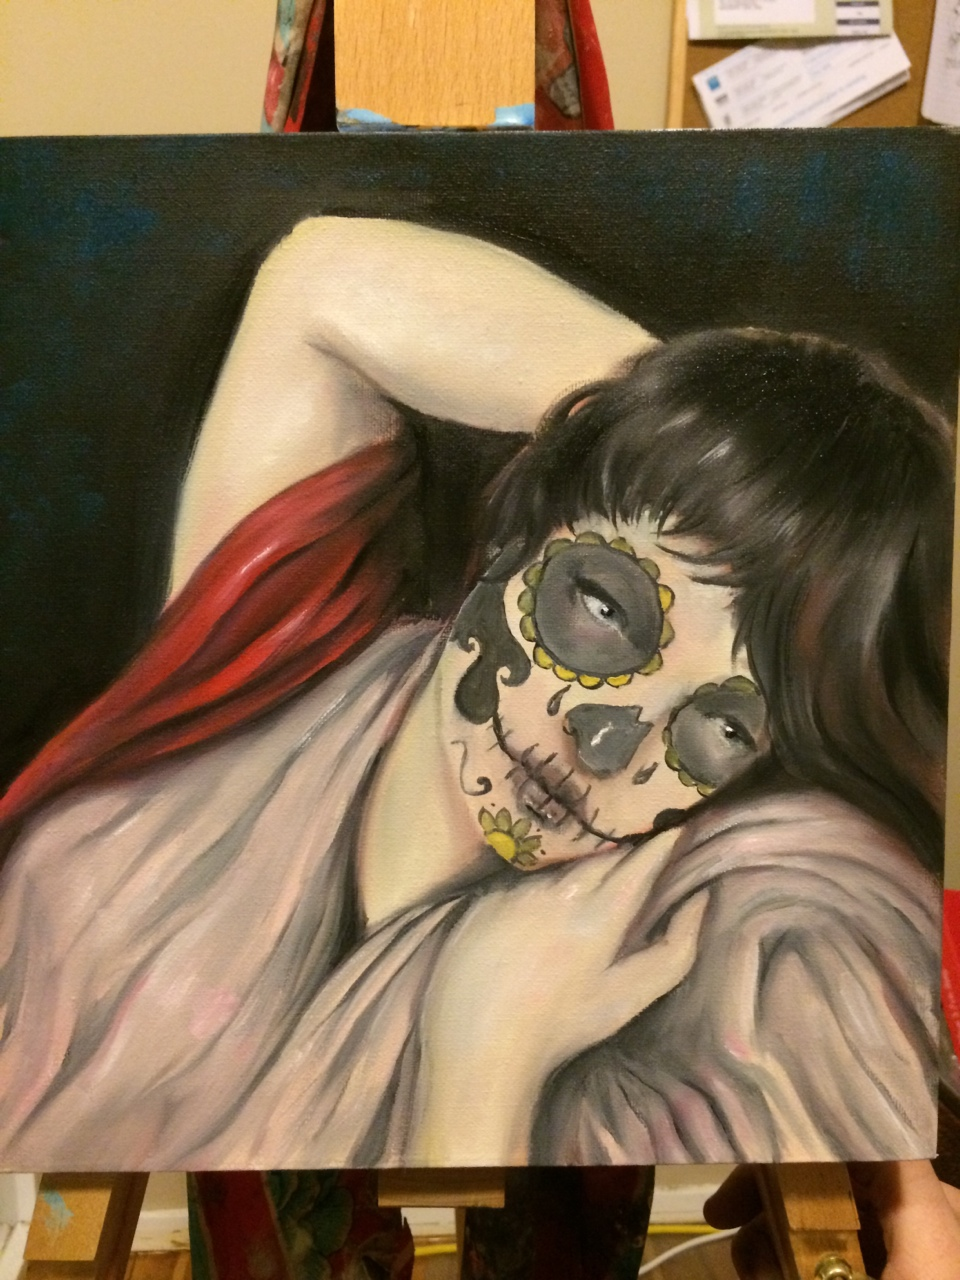 'La Venus Durmiente' Probably the most detailed artwork I have ever done. It was commissioned for an album cover with the brief being 'Sleeping Venus with day of the dead makeup'. Oil on canvas. Follow me for progress photos and other cool art.